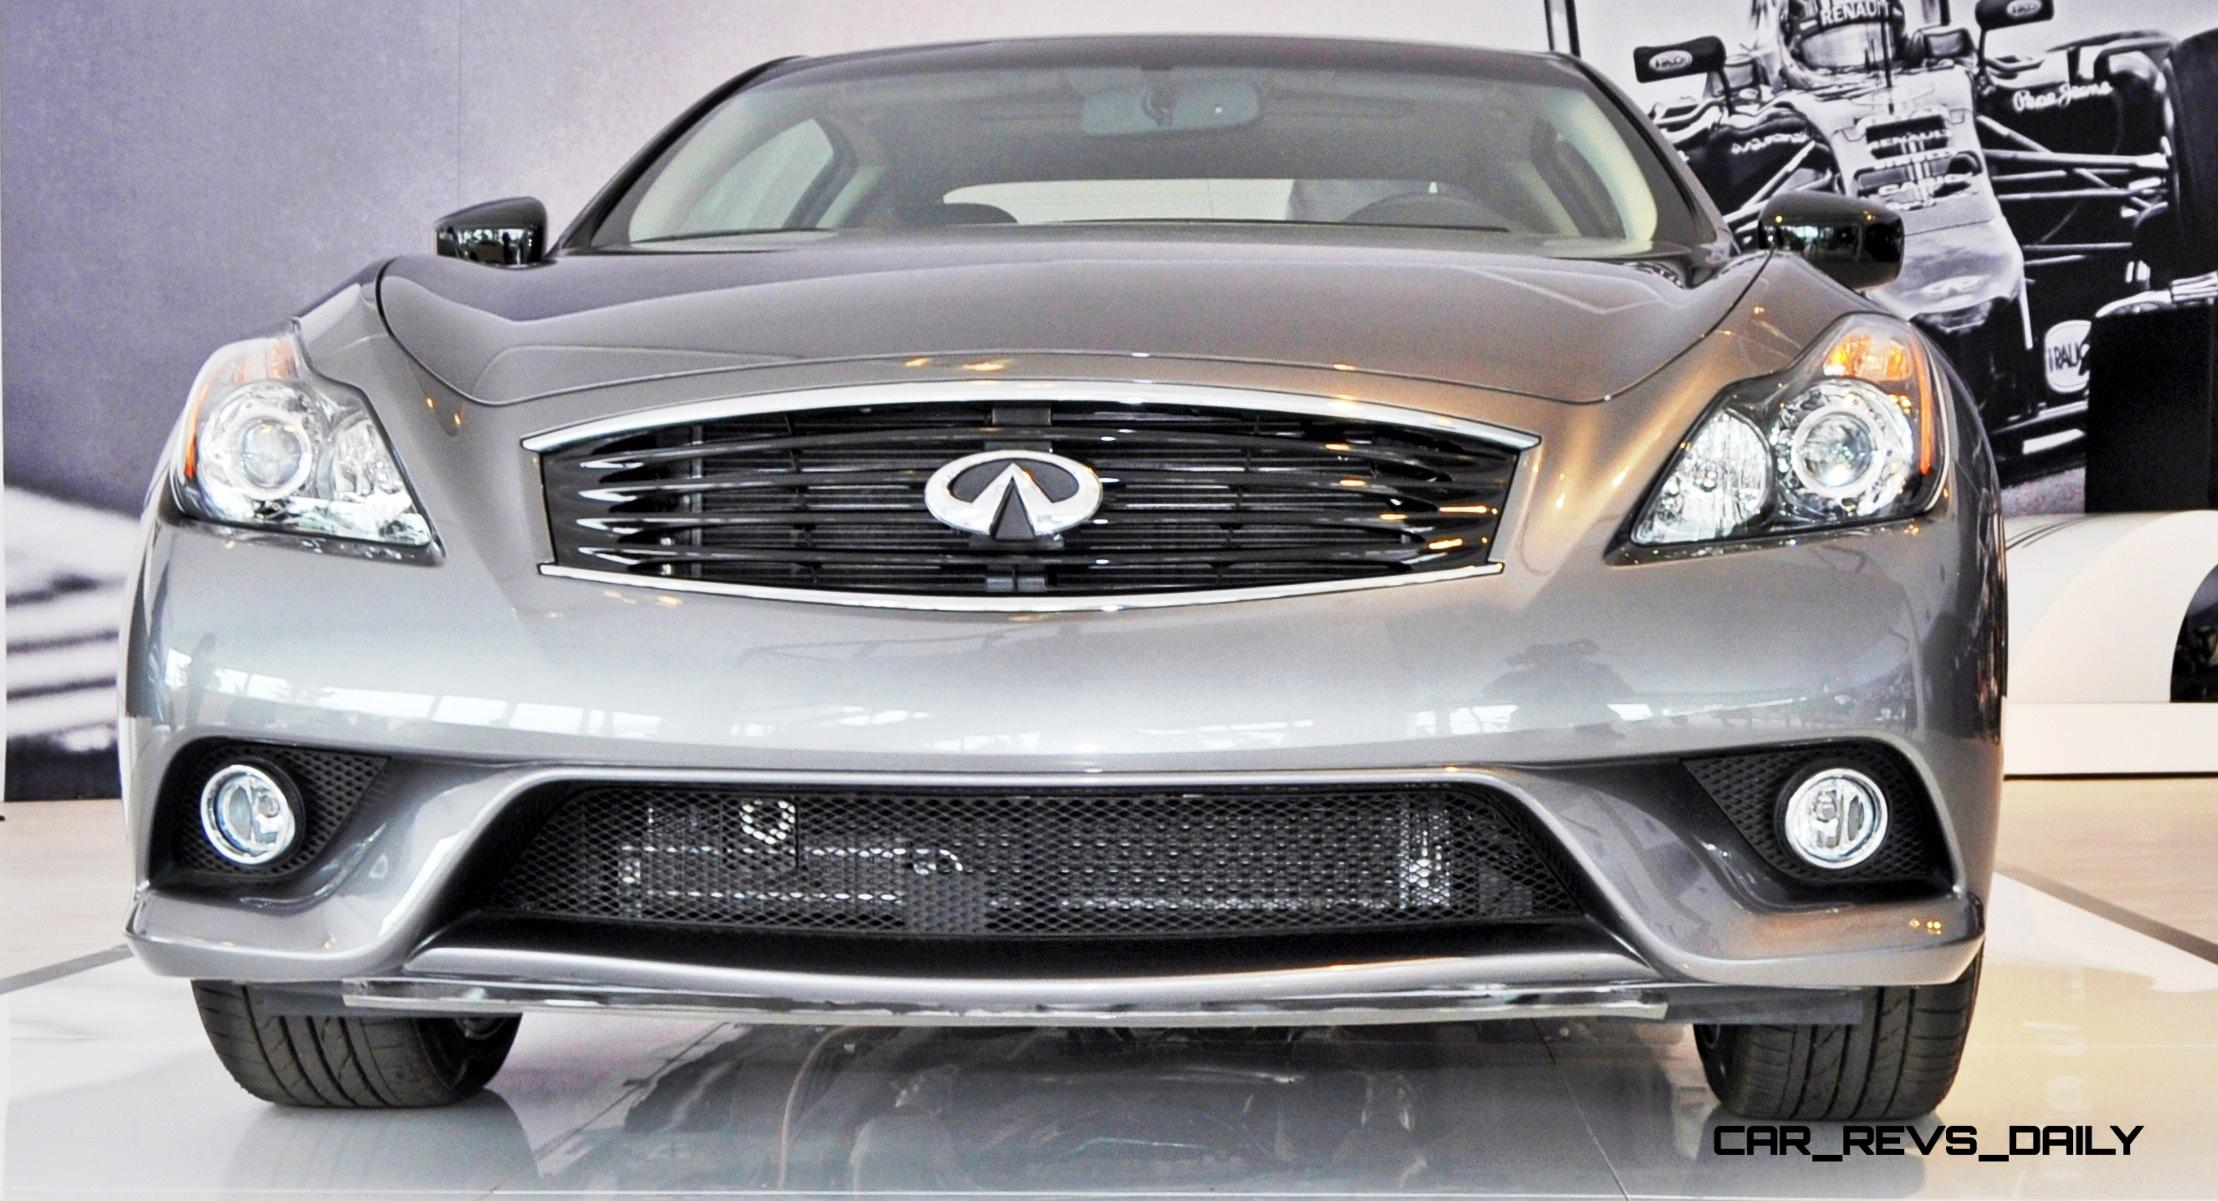 2015 Infiniti Q60s Reveals Its Sexy Gloss Black Accents At